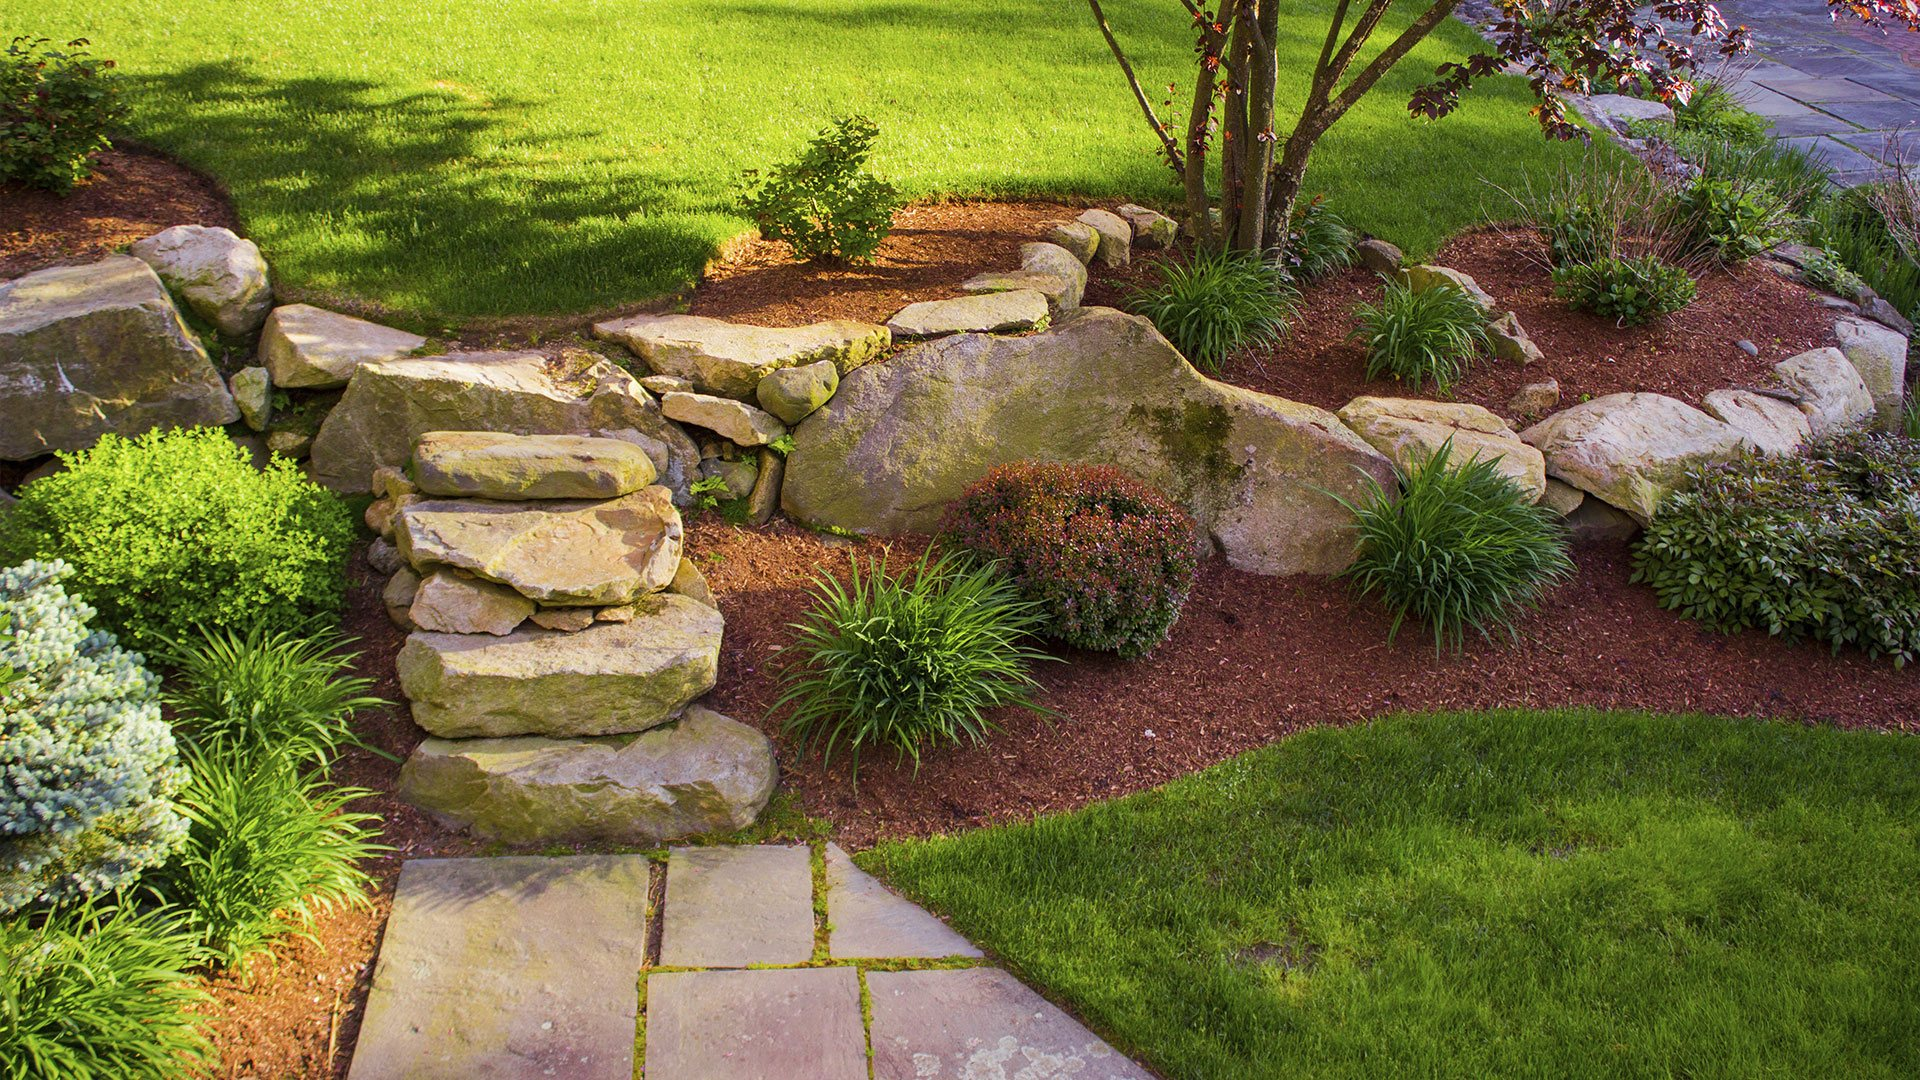 Home lakewood landscape supply boulders and rip rap for Small red rocks for landscaping